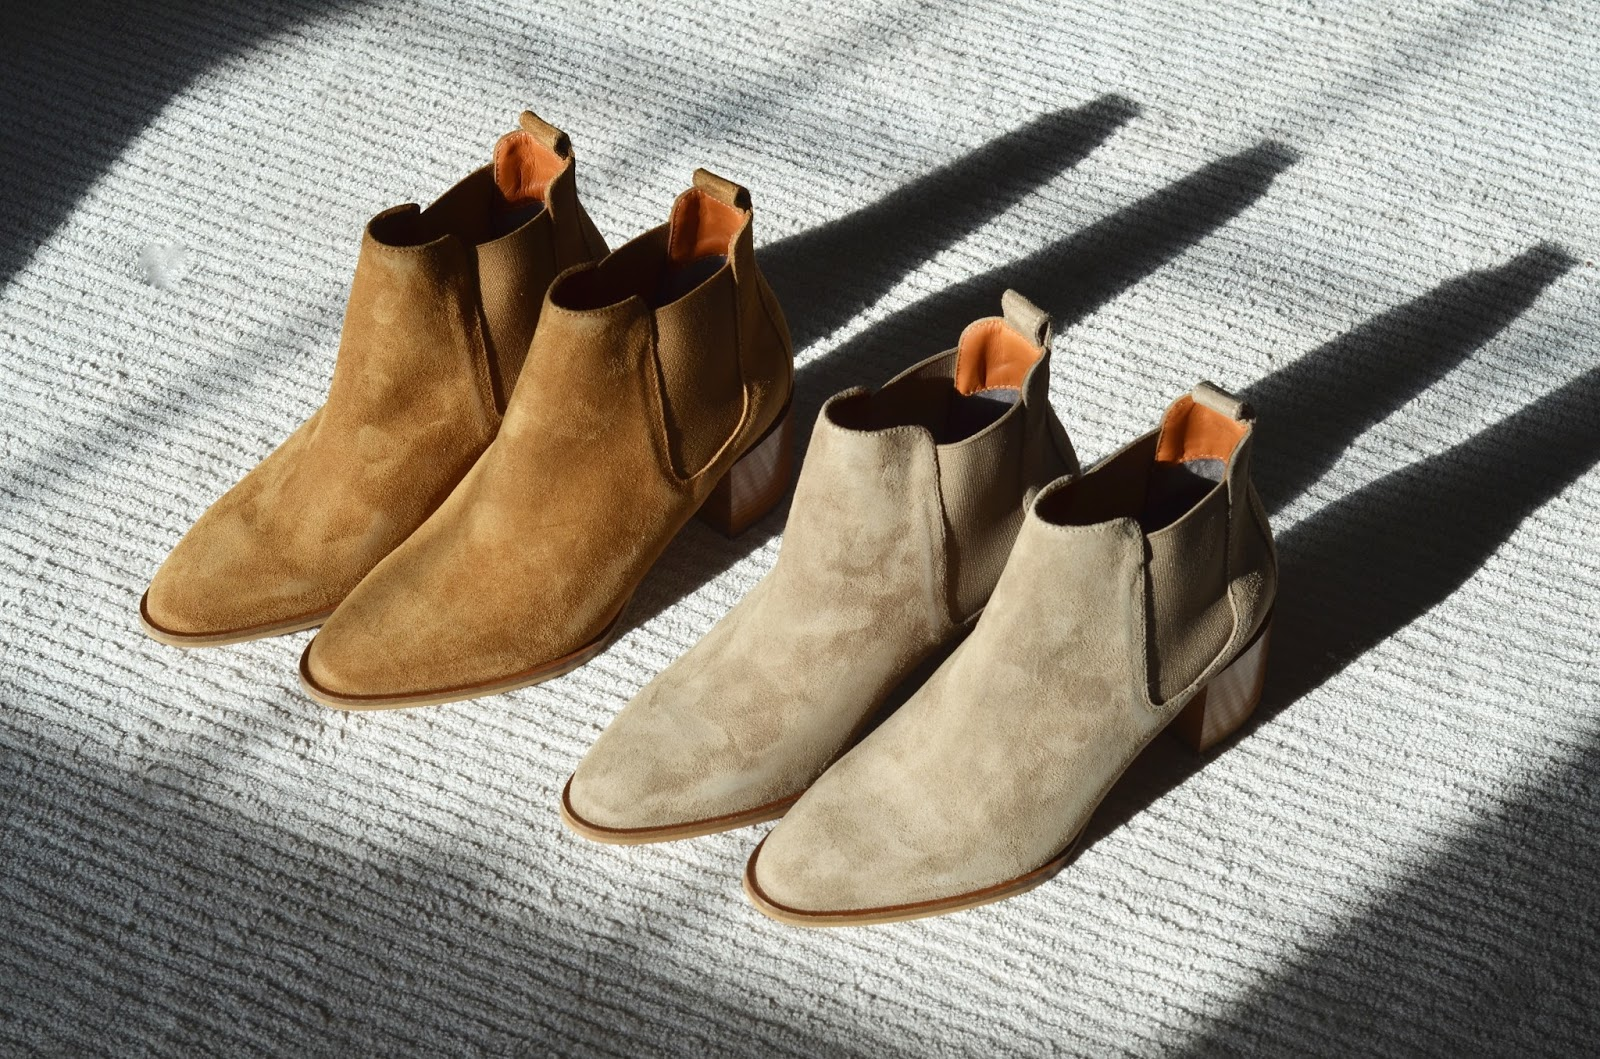 Everlane Suede Heel Boot Taupe Gray Chestnut Review Photos Comparison